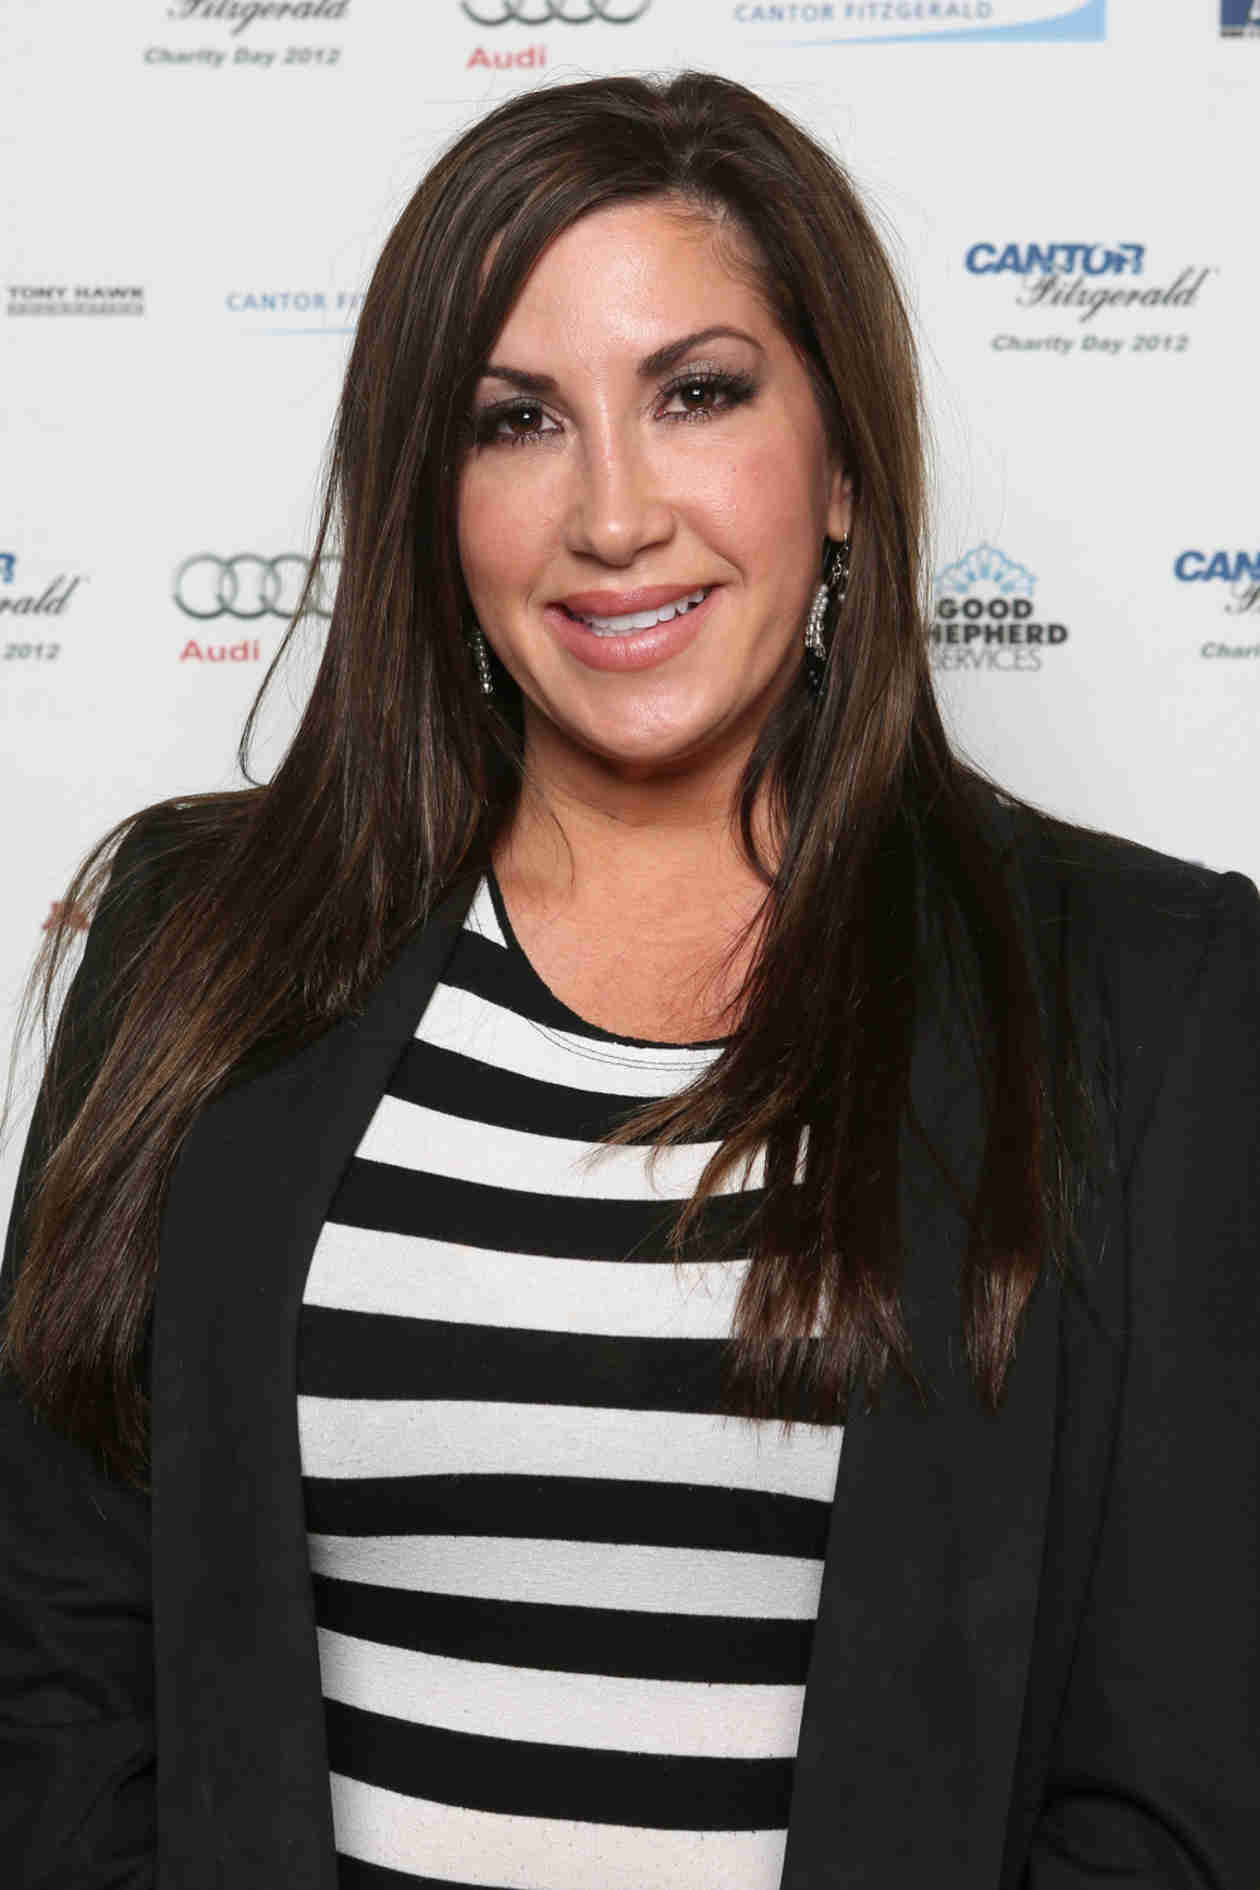 Did Jacqueline Laurita's Rumored Return Help RHONJ Ratings? She Thinks So!